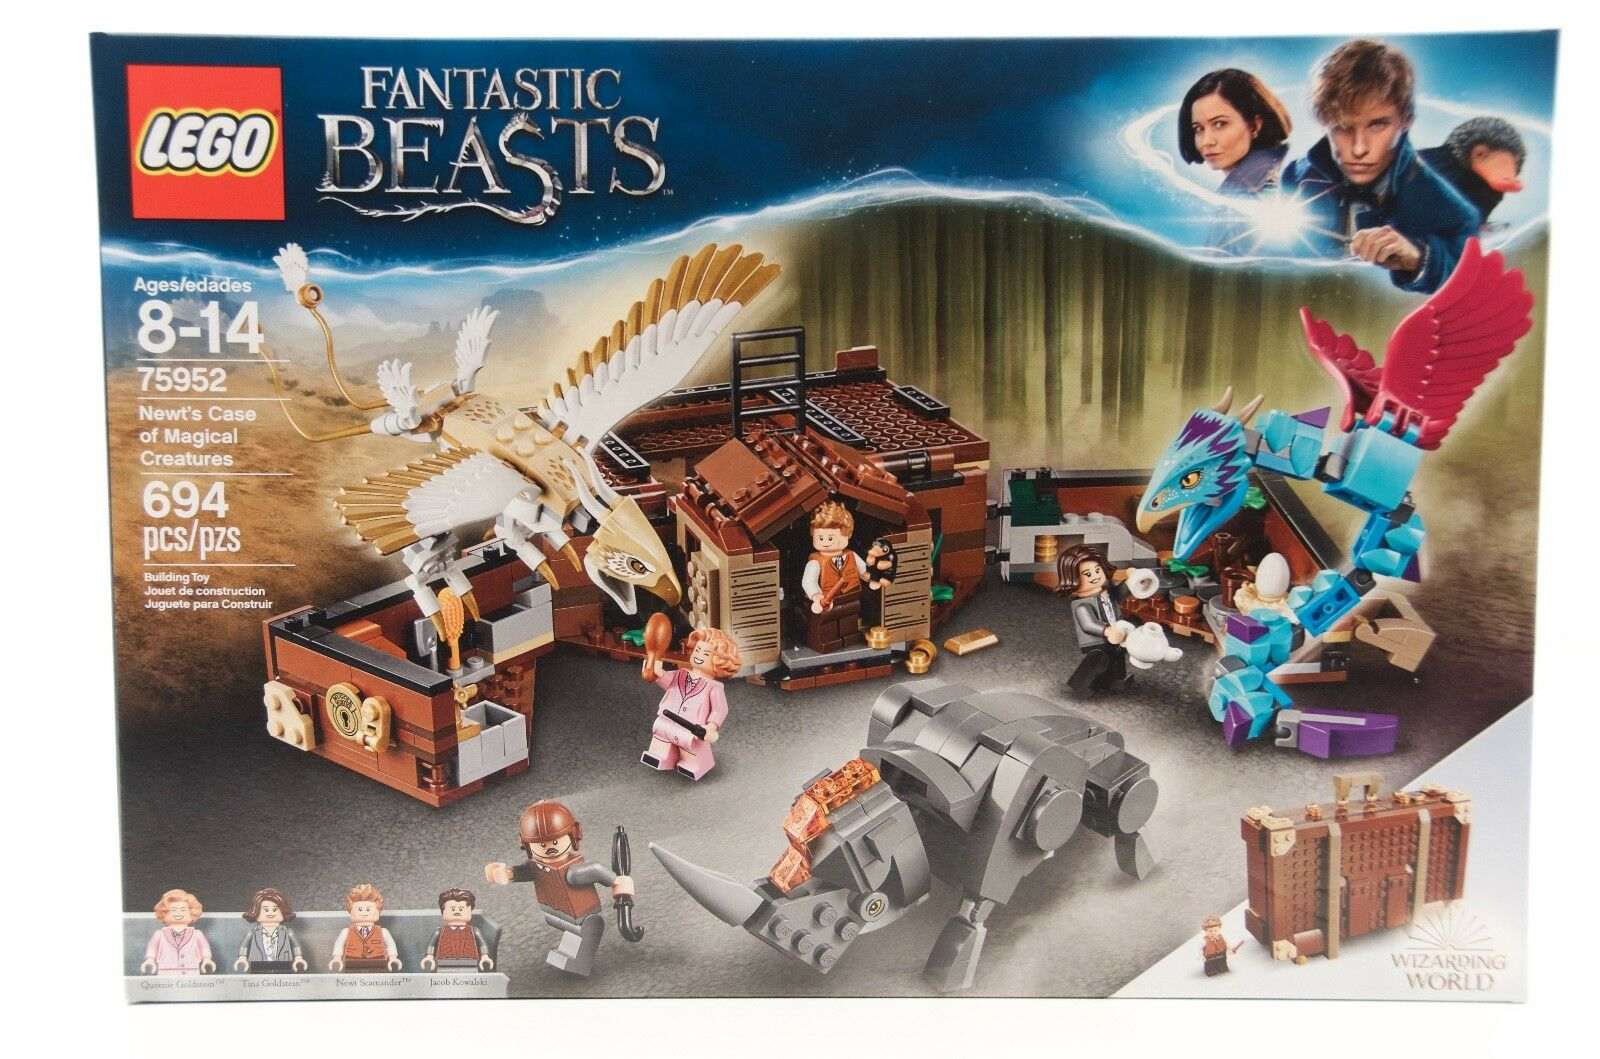 Lego FANTASTIC BEASTS 75952 Nuovot's Case of Magical Creatures 694 PCS Ages 8 & Up